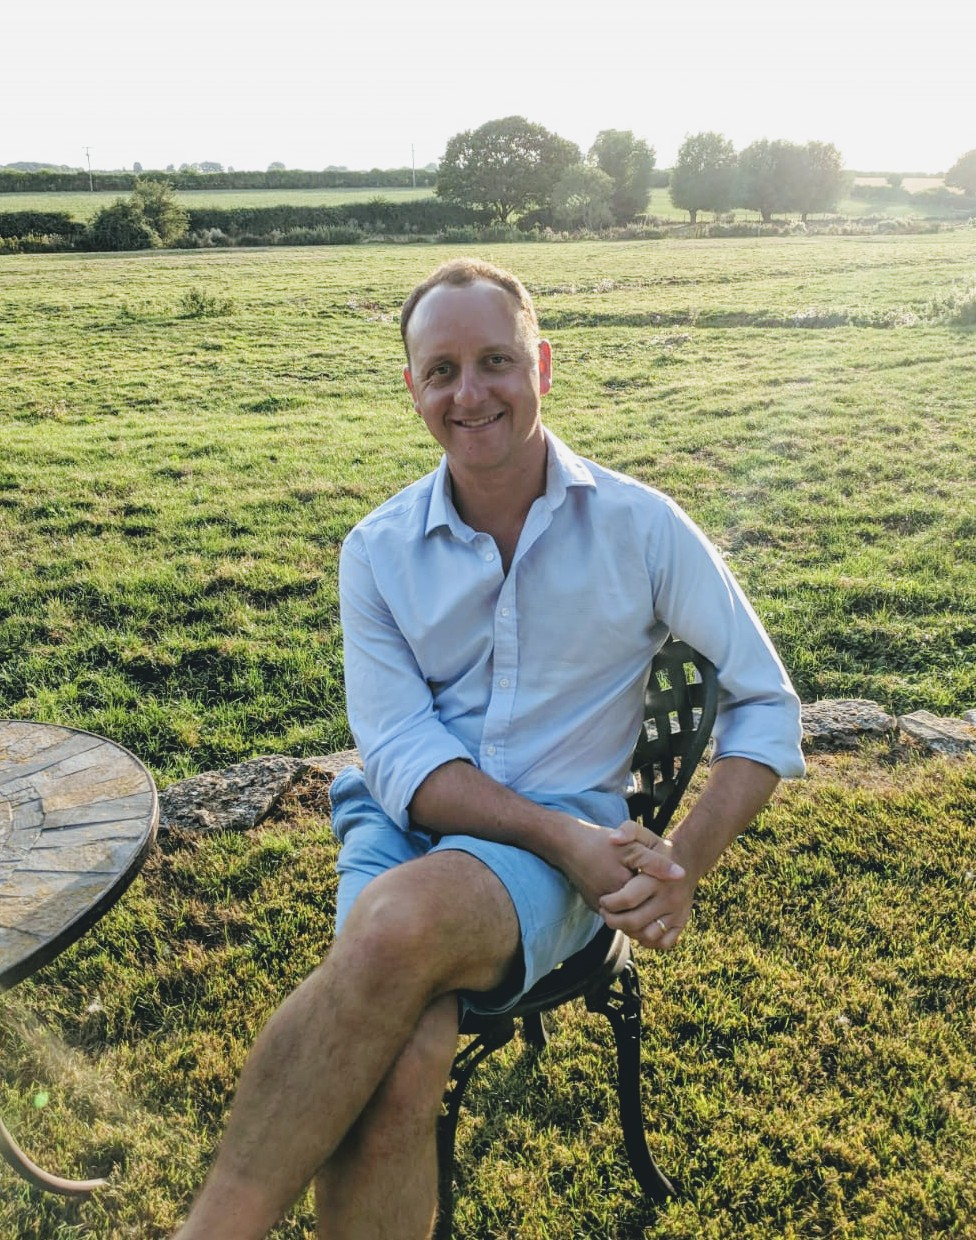 """John Featherby - John is the Founder and Principal Consultant at Shoremount. Read more about his life and personal project which overlaps with the work of Shoremount: """"The Great Reawakening""""."""